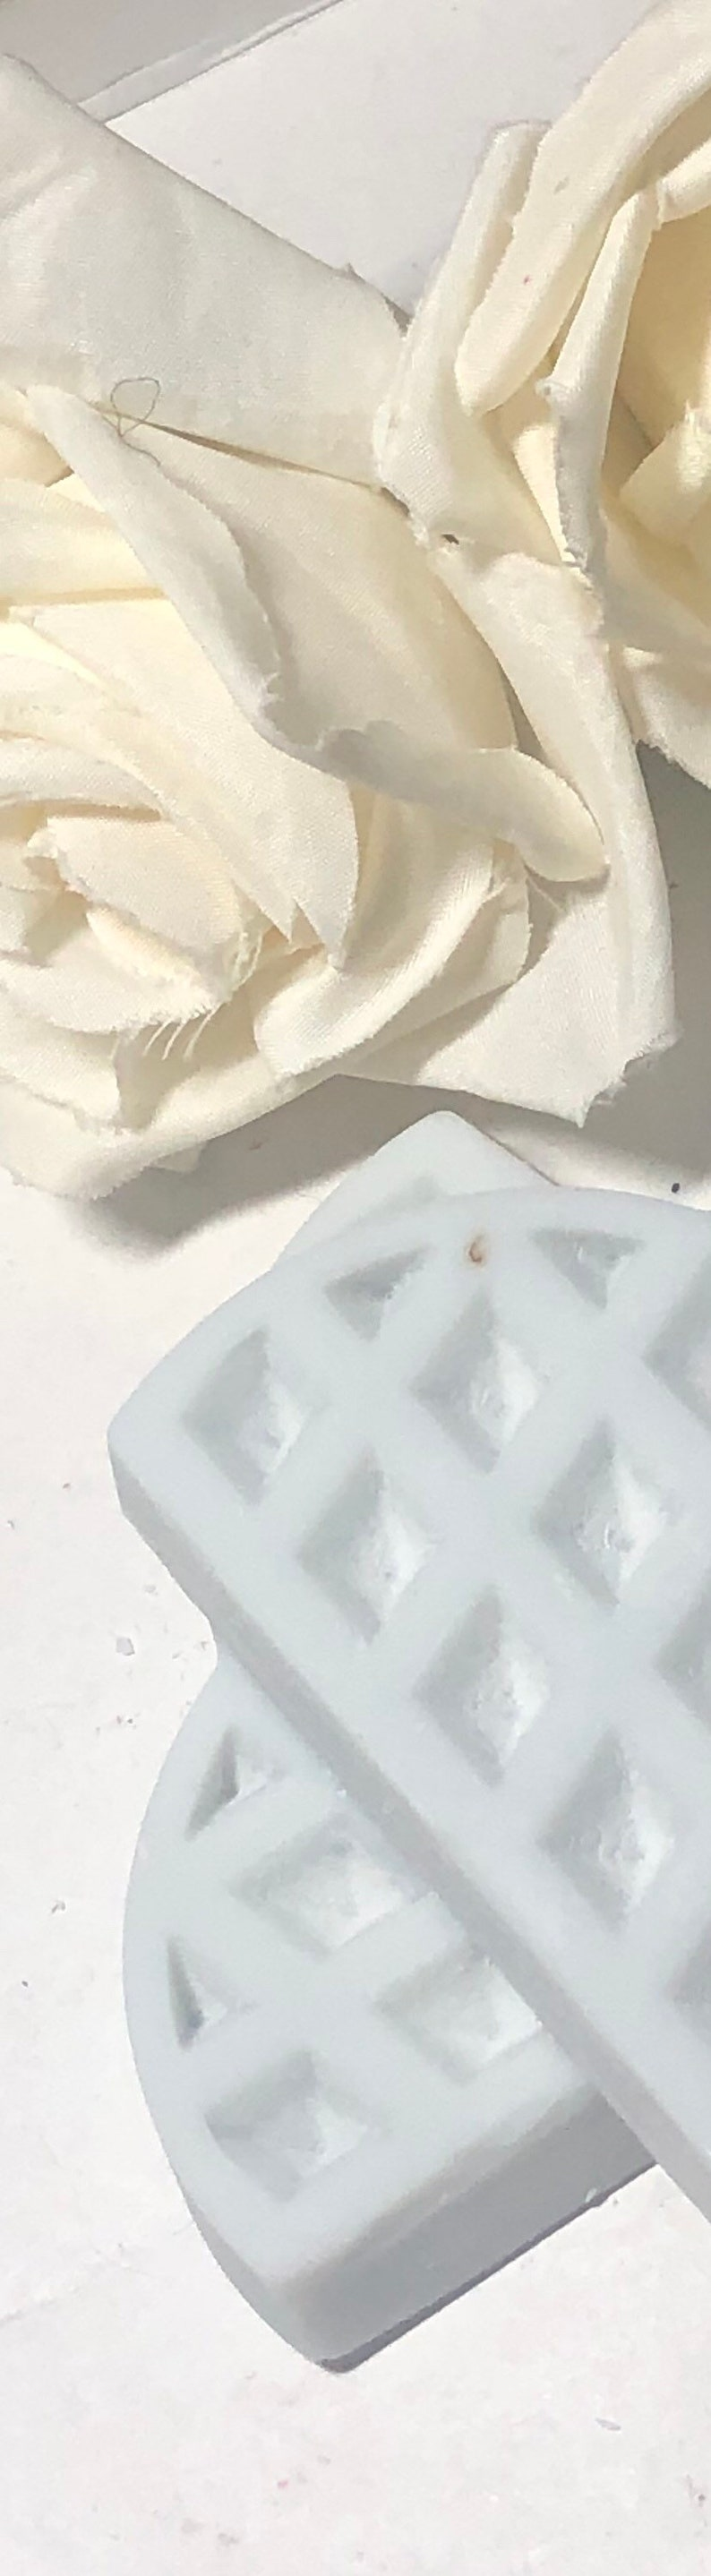 Lavender ice soy wax melts sweet floral